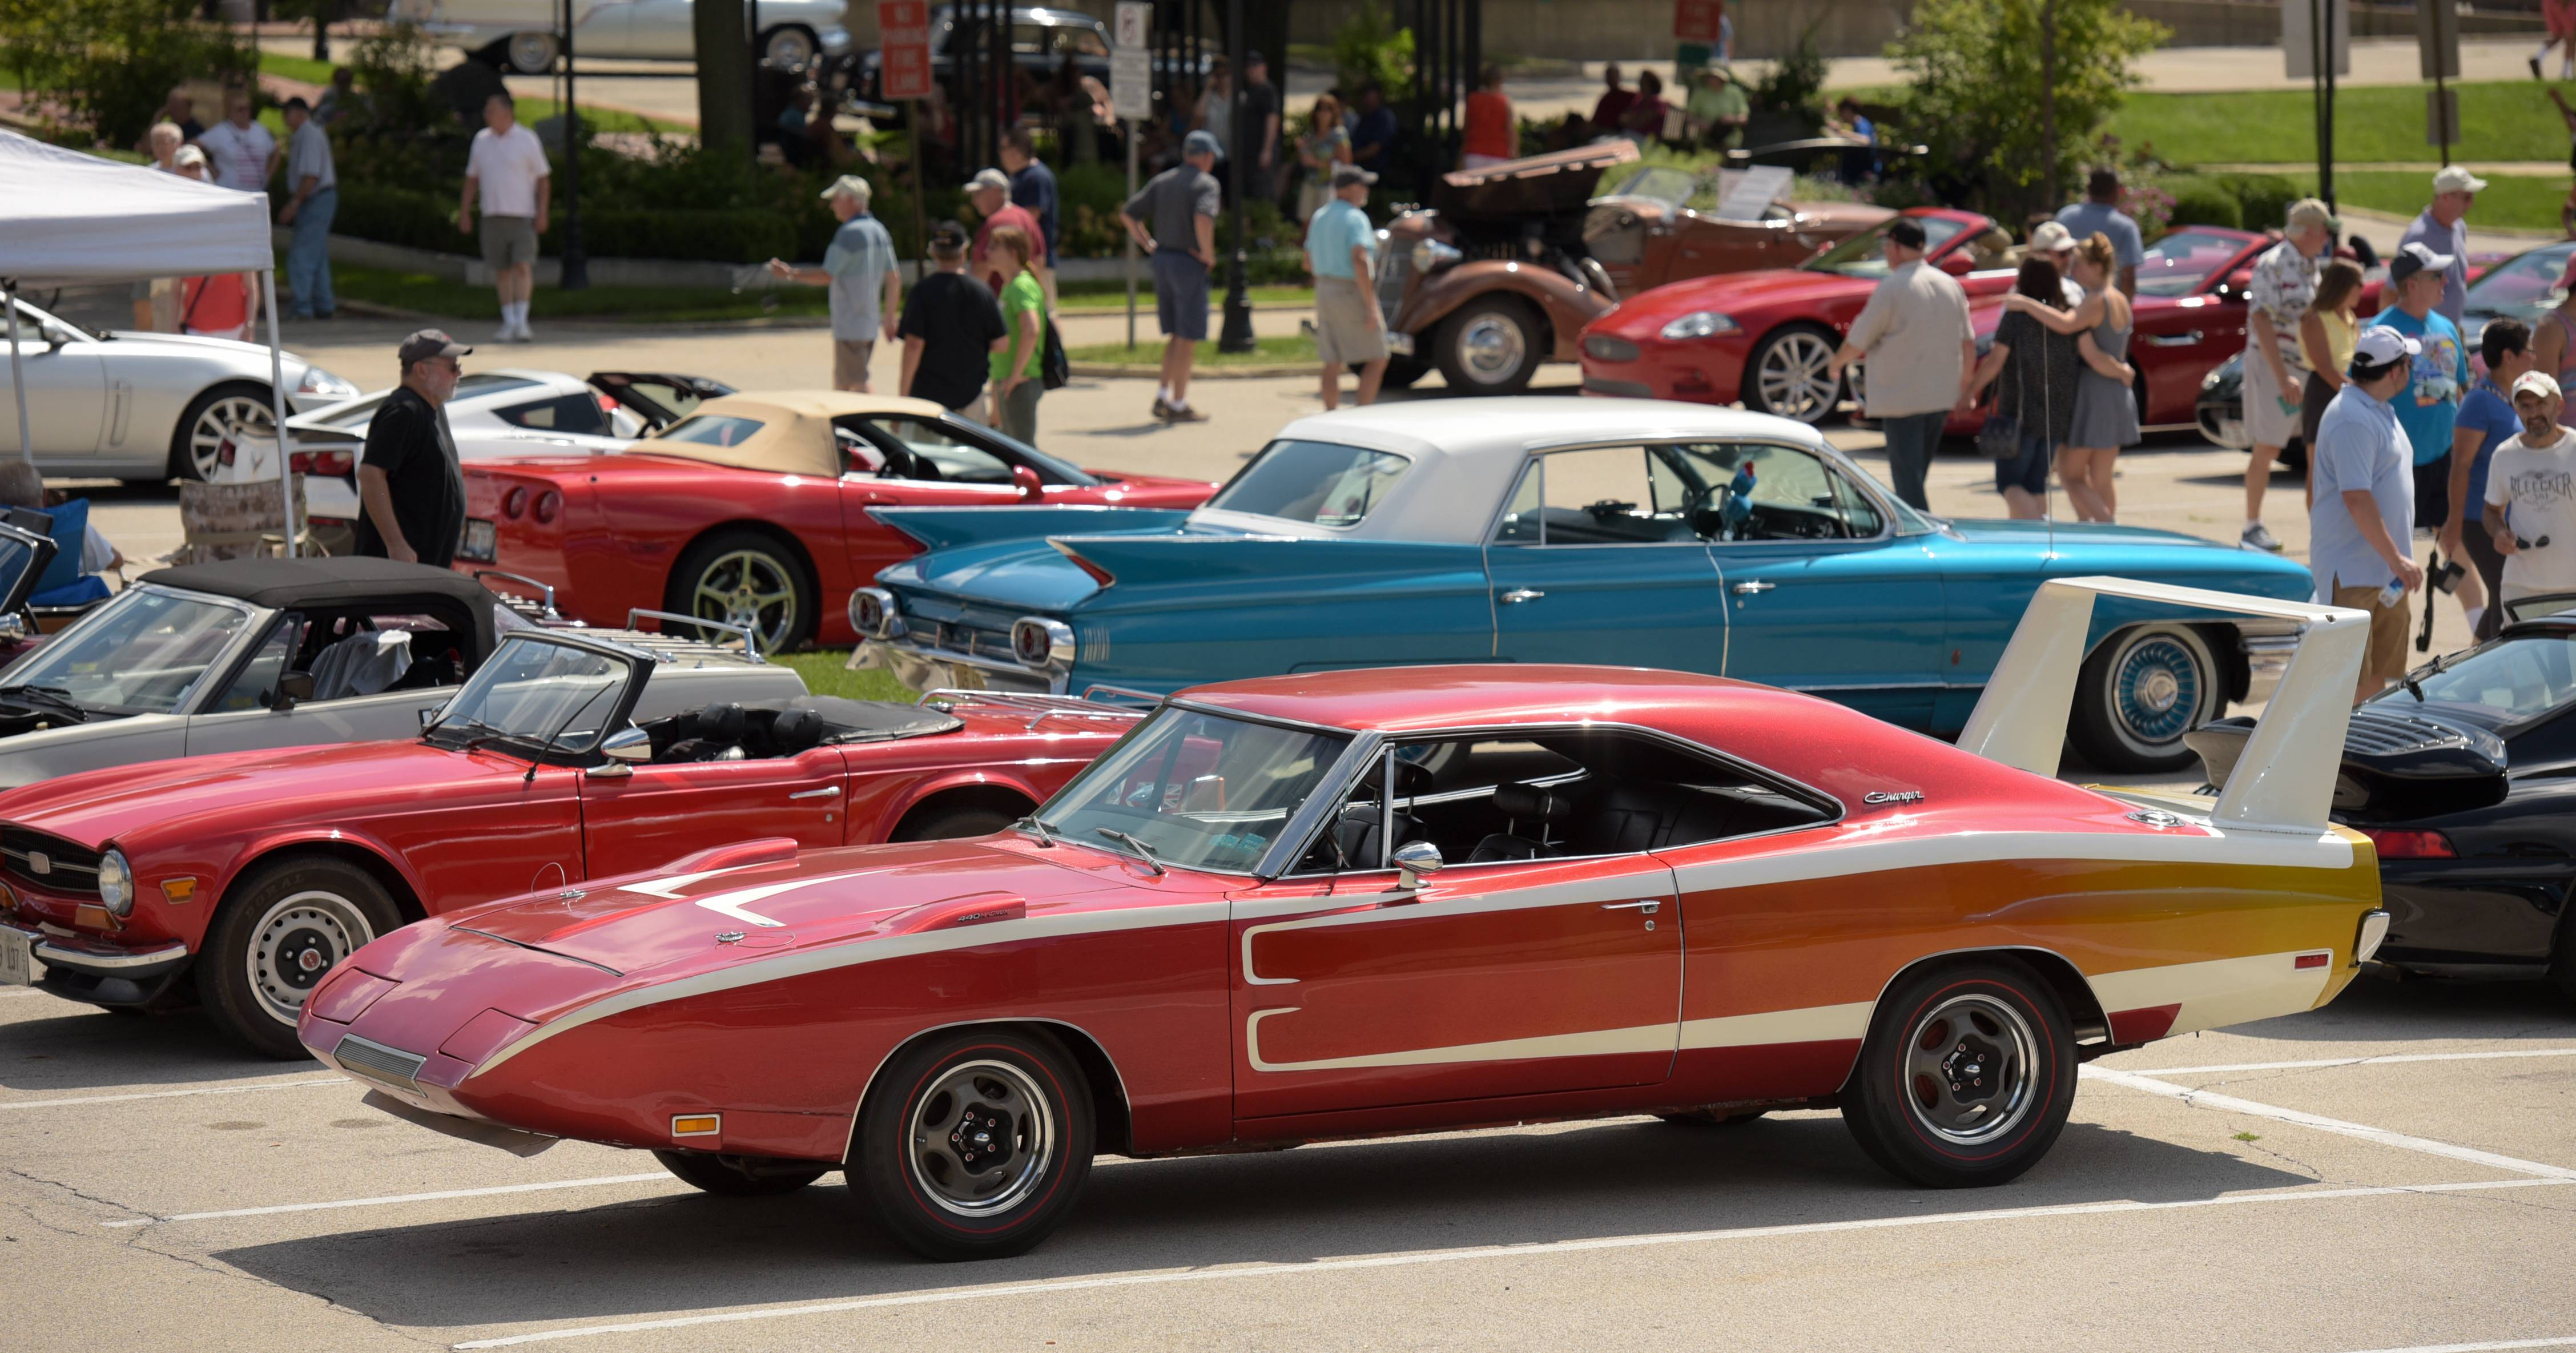 Classic cars of all types will be on display Sunday at the annual Concours d'Elegance in downtown Geneva.